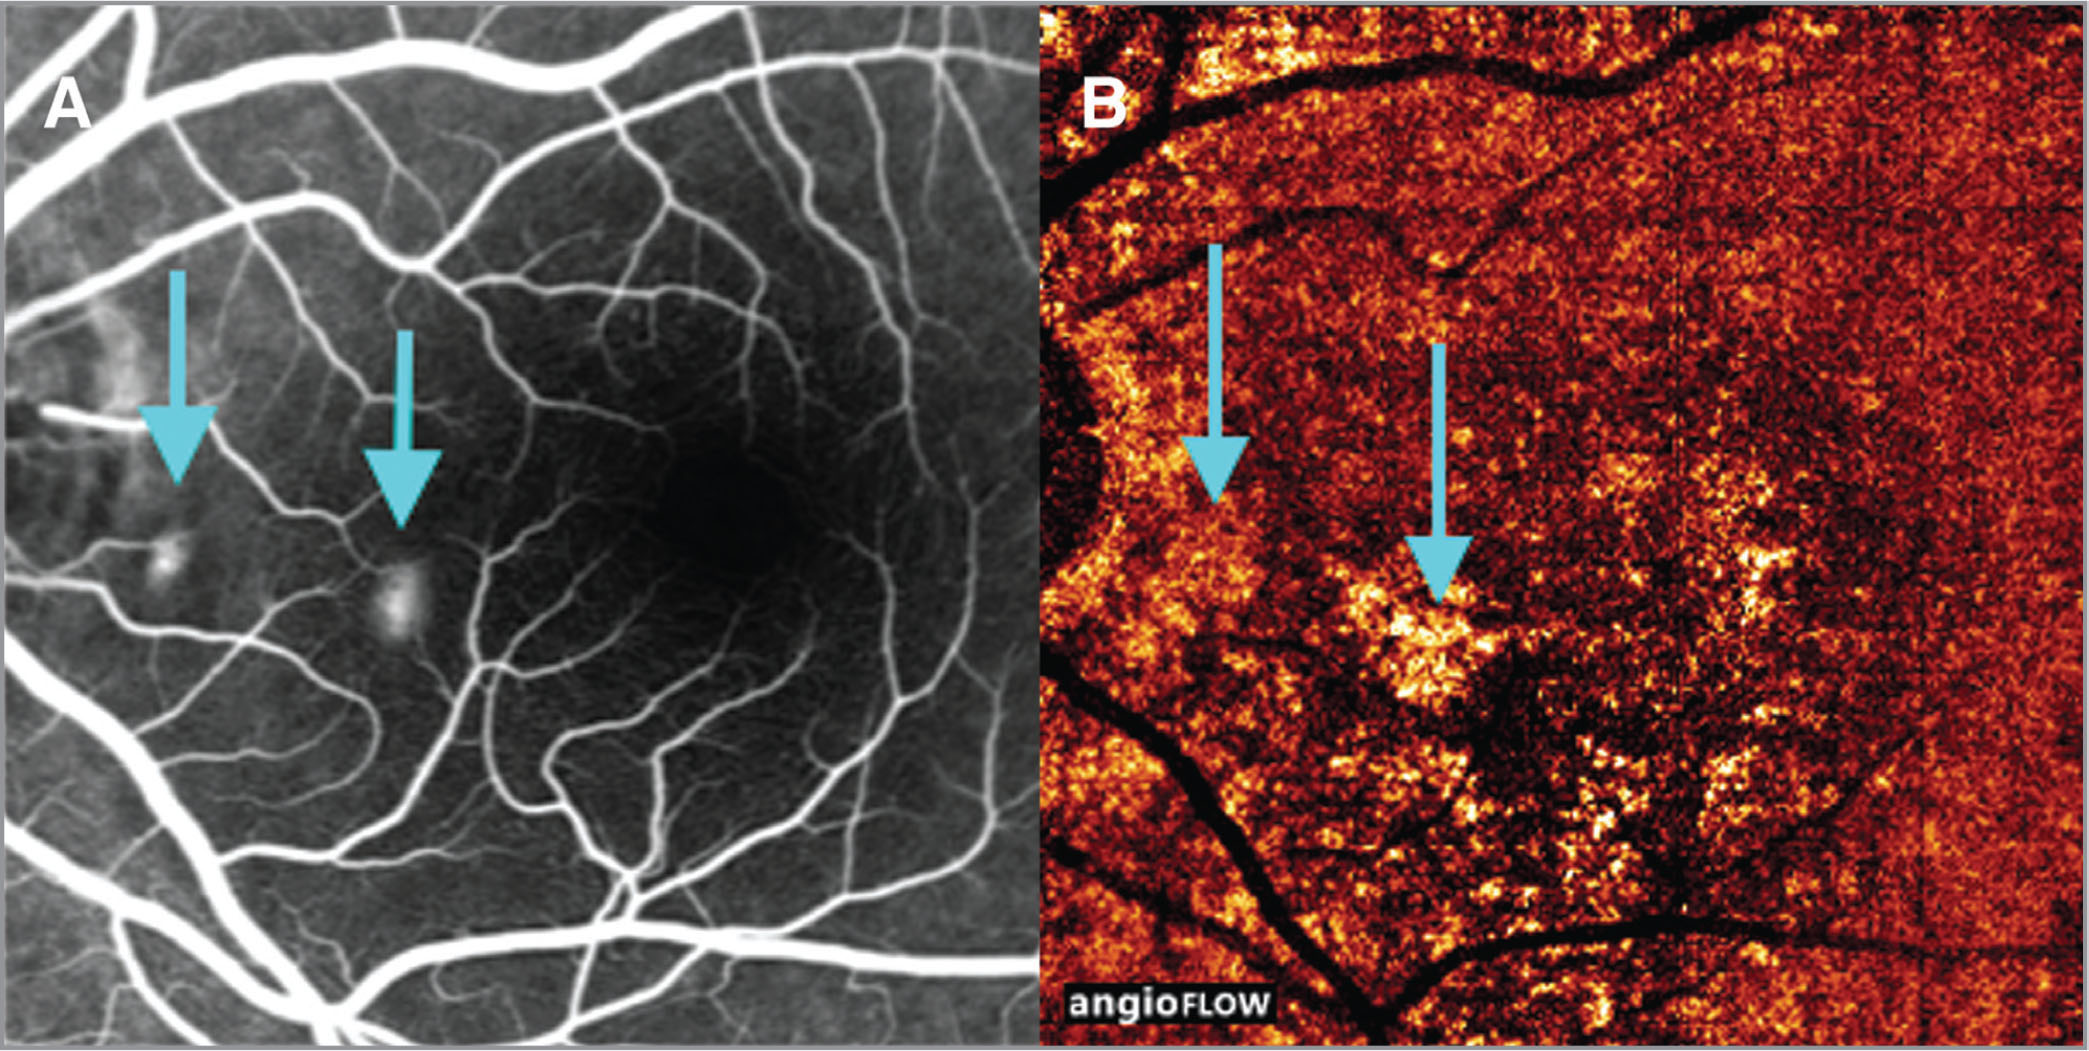 The images of patient No. 14, a 33-year-old woman diagnosed with acute central serous chorioretinopathy. (A) Two hyperfluorescent leaking points in late phase of fluorescein angiography (FA). (B) The corresponding optical coherence tomography angiography image where the hyperreflective signals shown by the arrows match the positions of leaking points on FA.